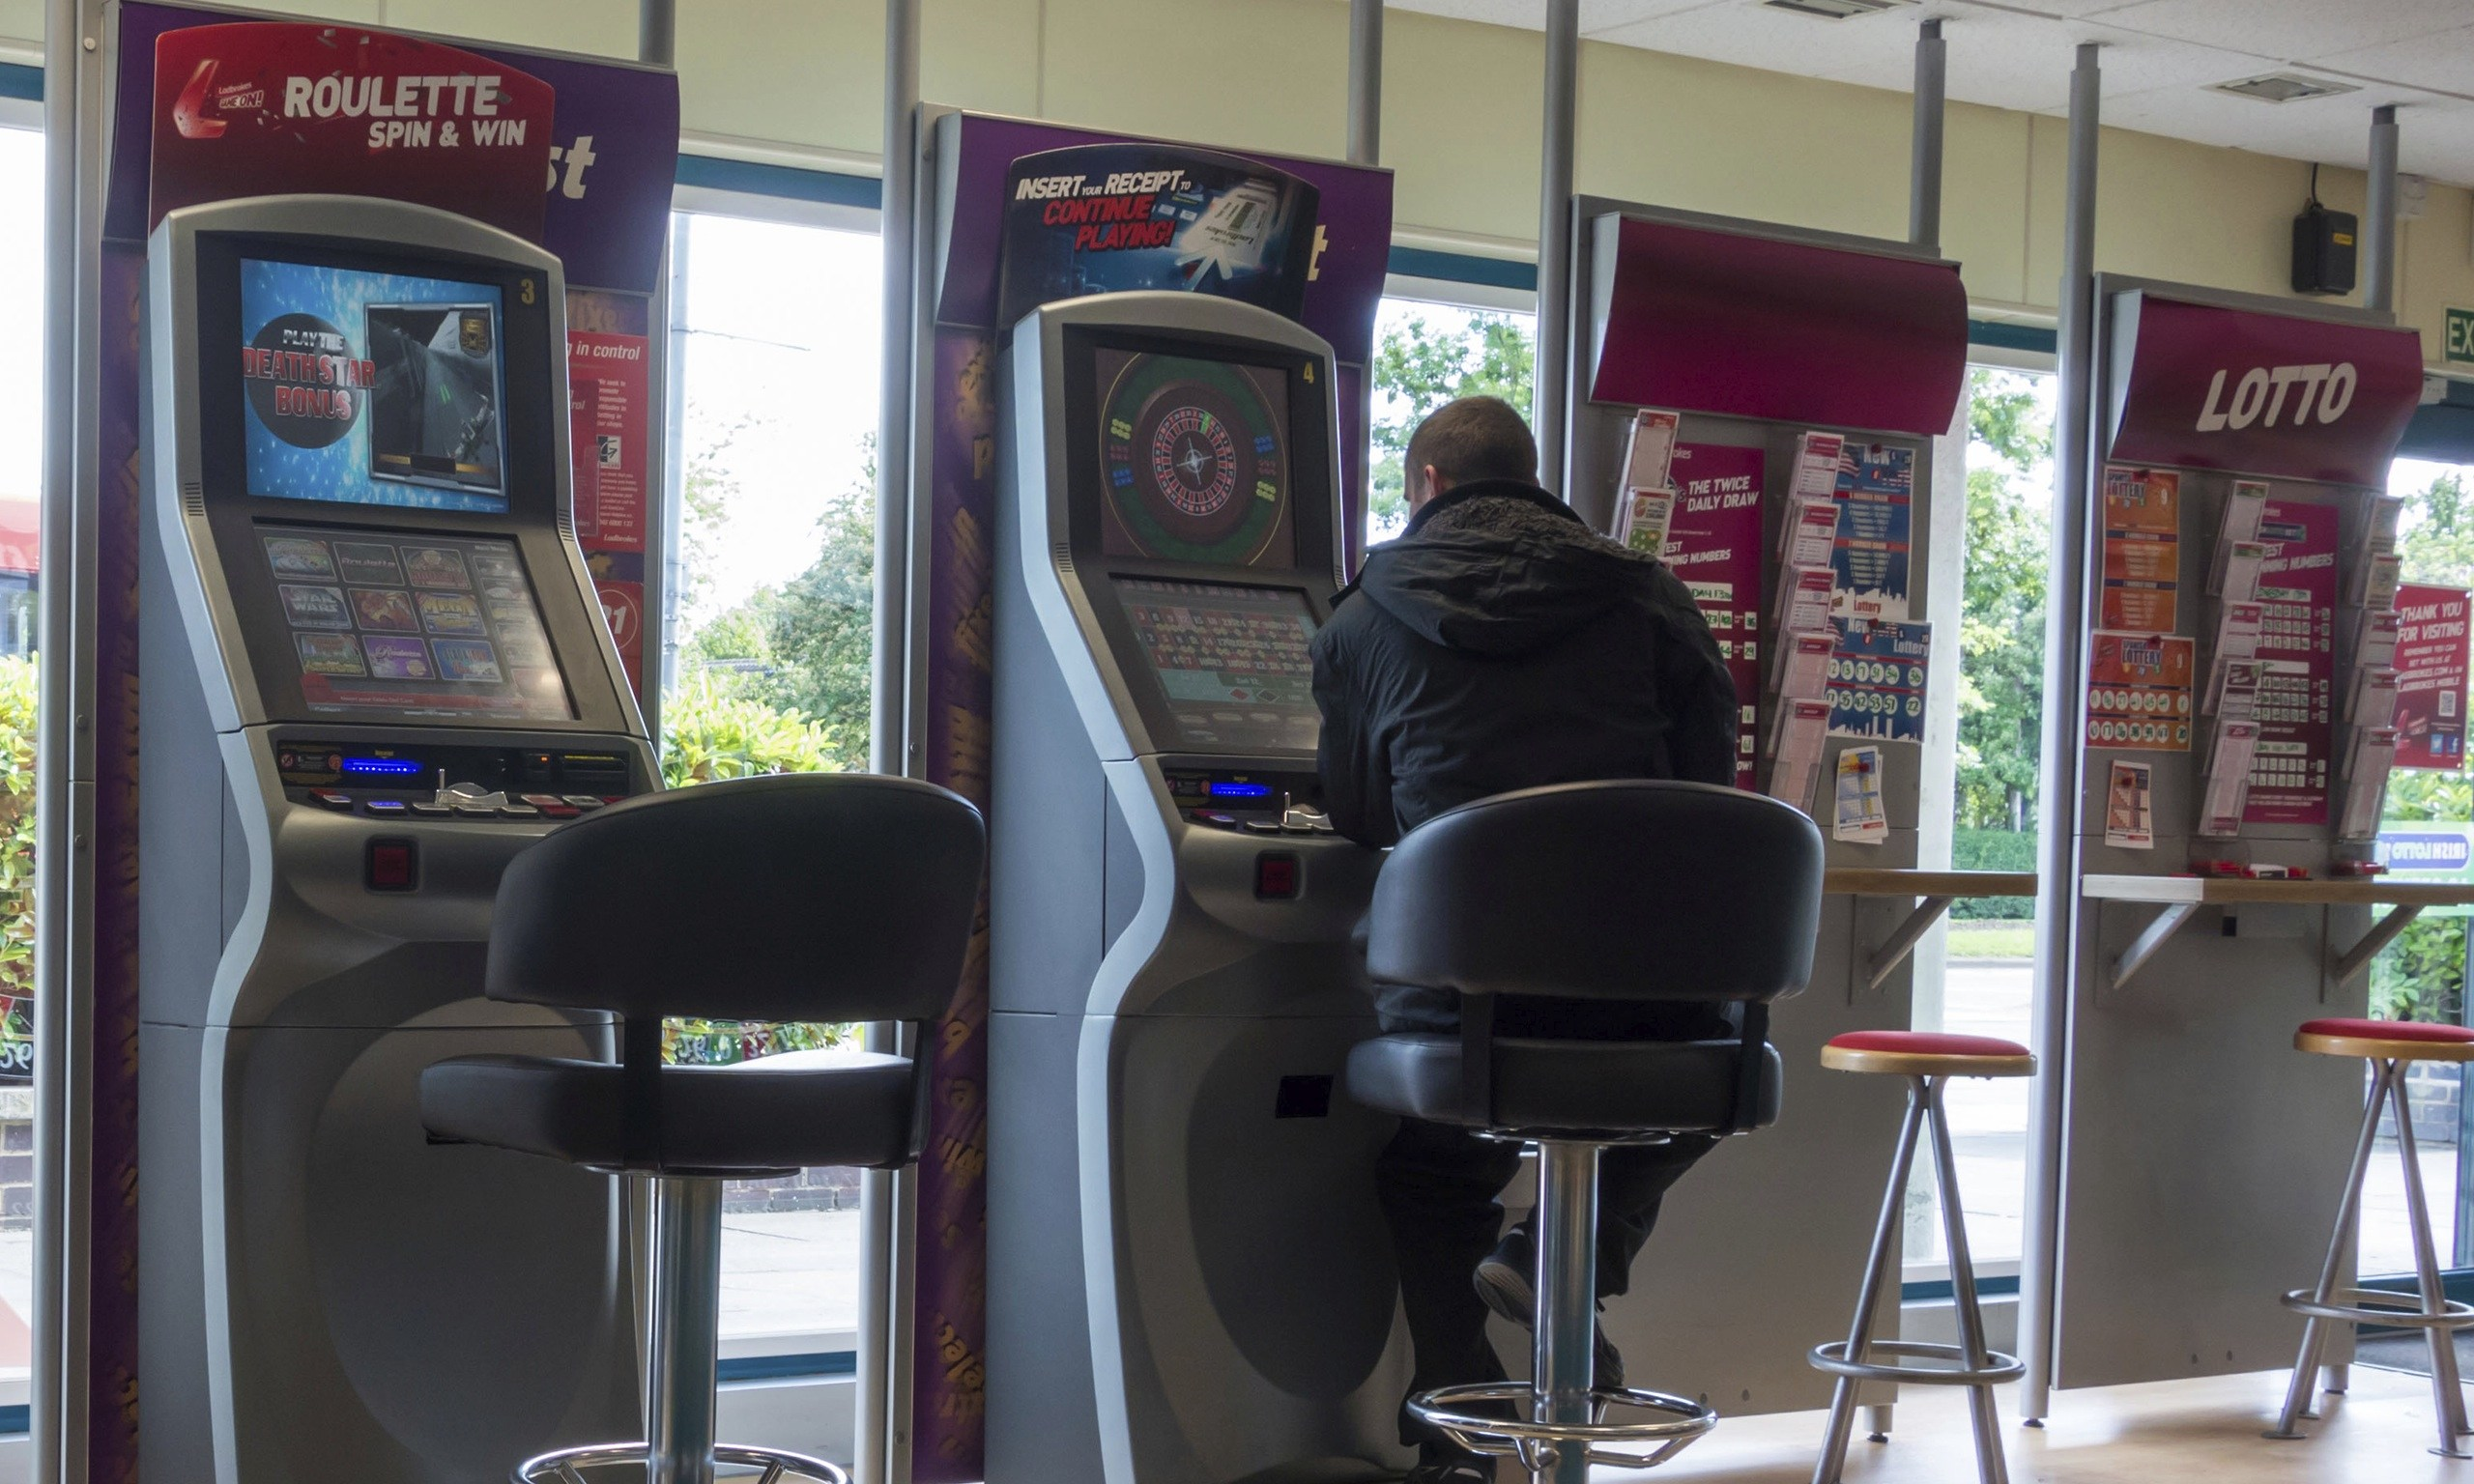 Calls for more support for those experiencing gambling-related harm in Wales